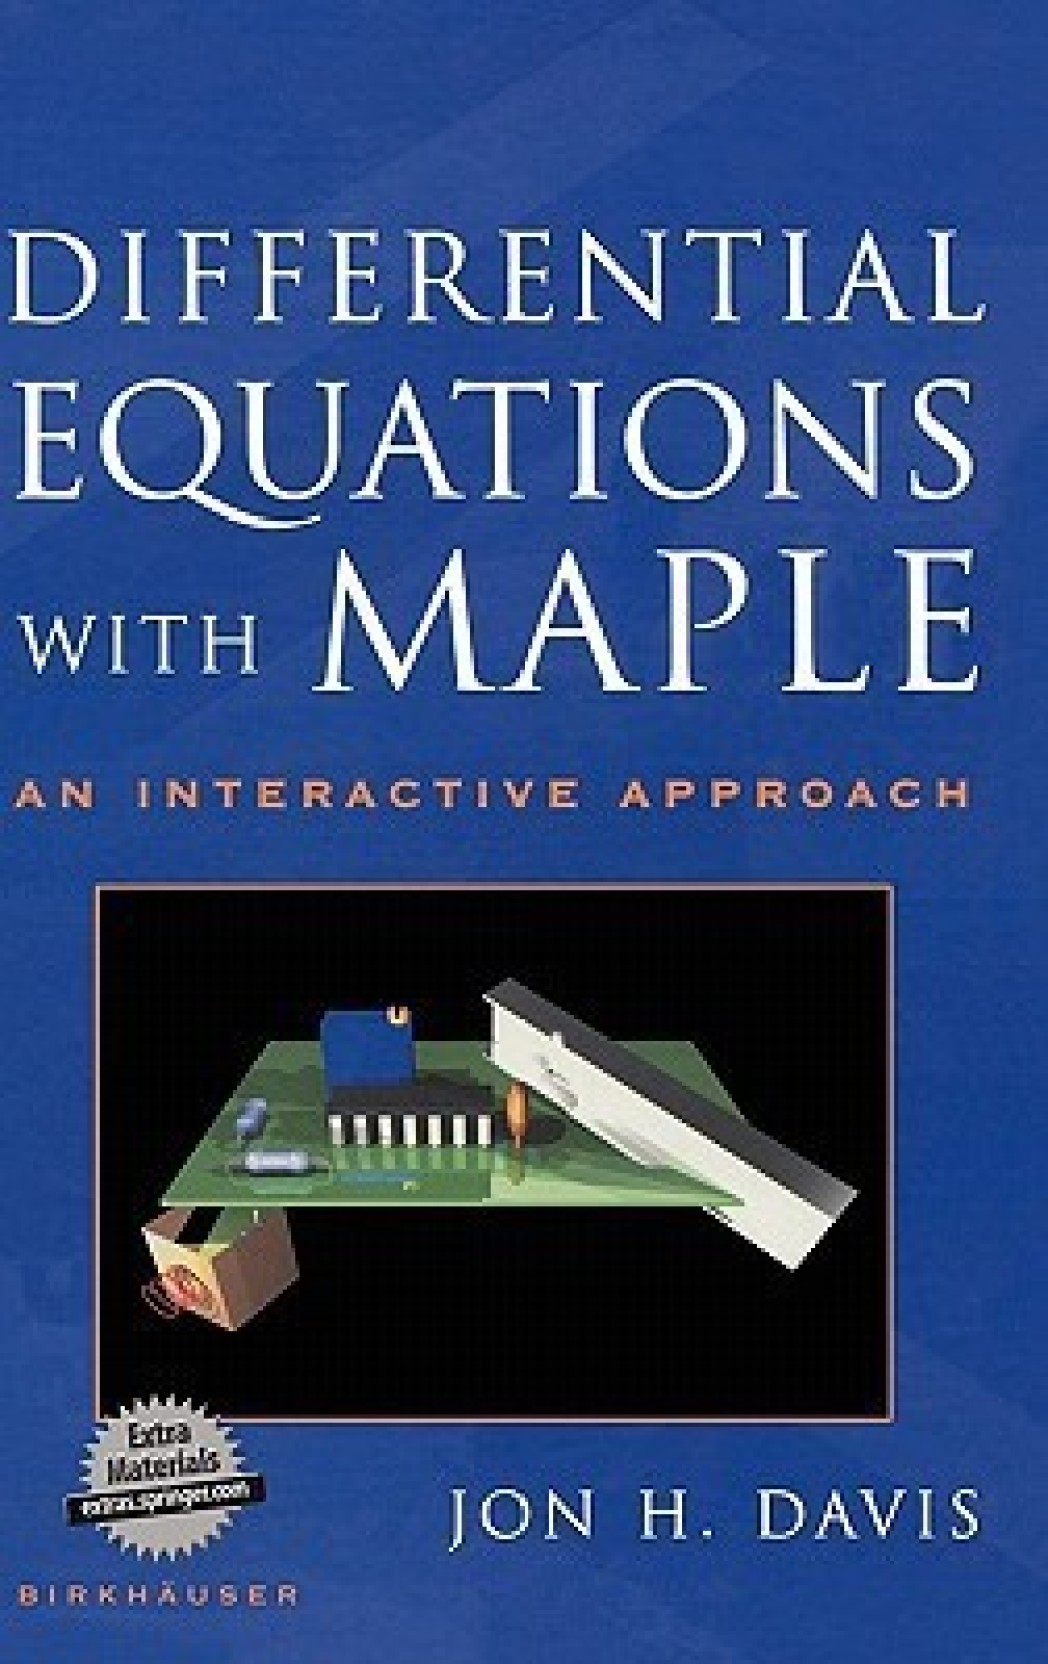 Differential Equations with Maple. ADD TO CART